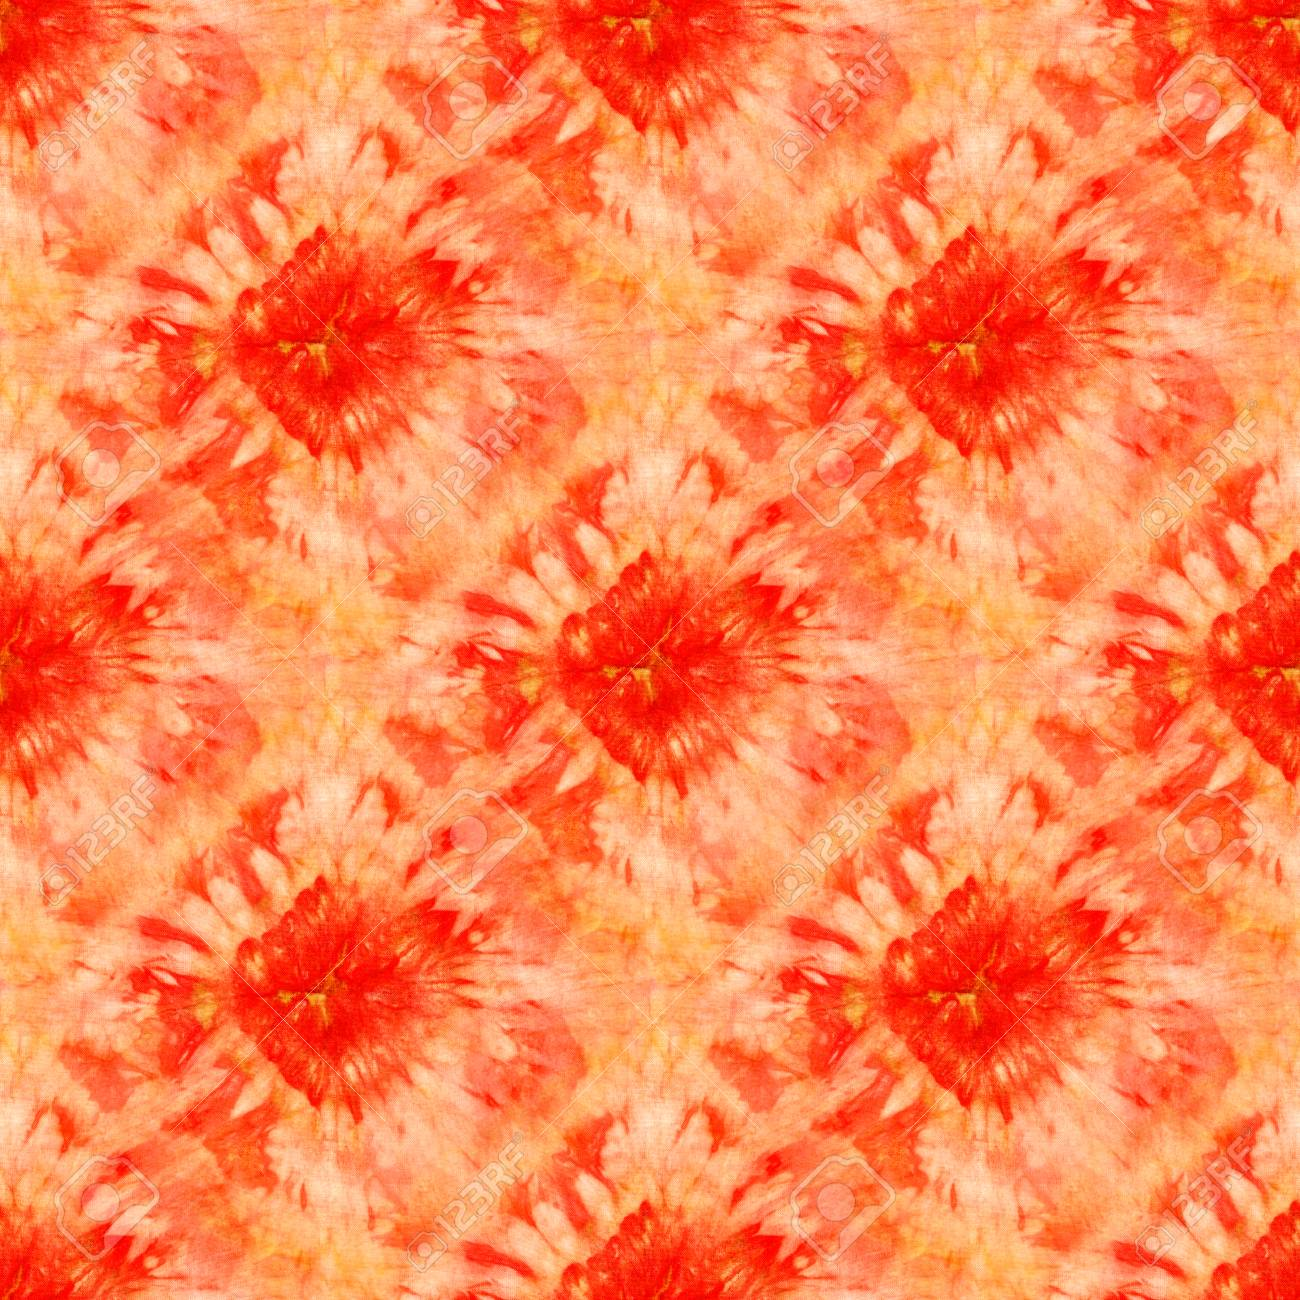 c6deeff0ea3c Seamless tie-dye pattern of red and orange color on white silk. Hand  painting